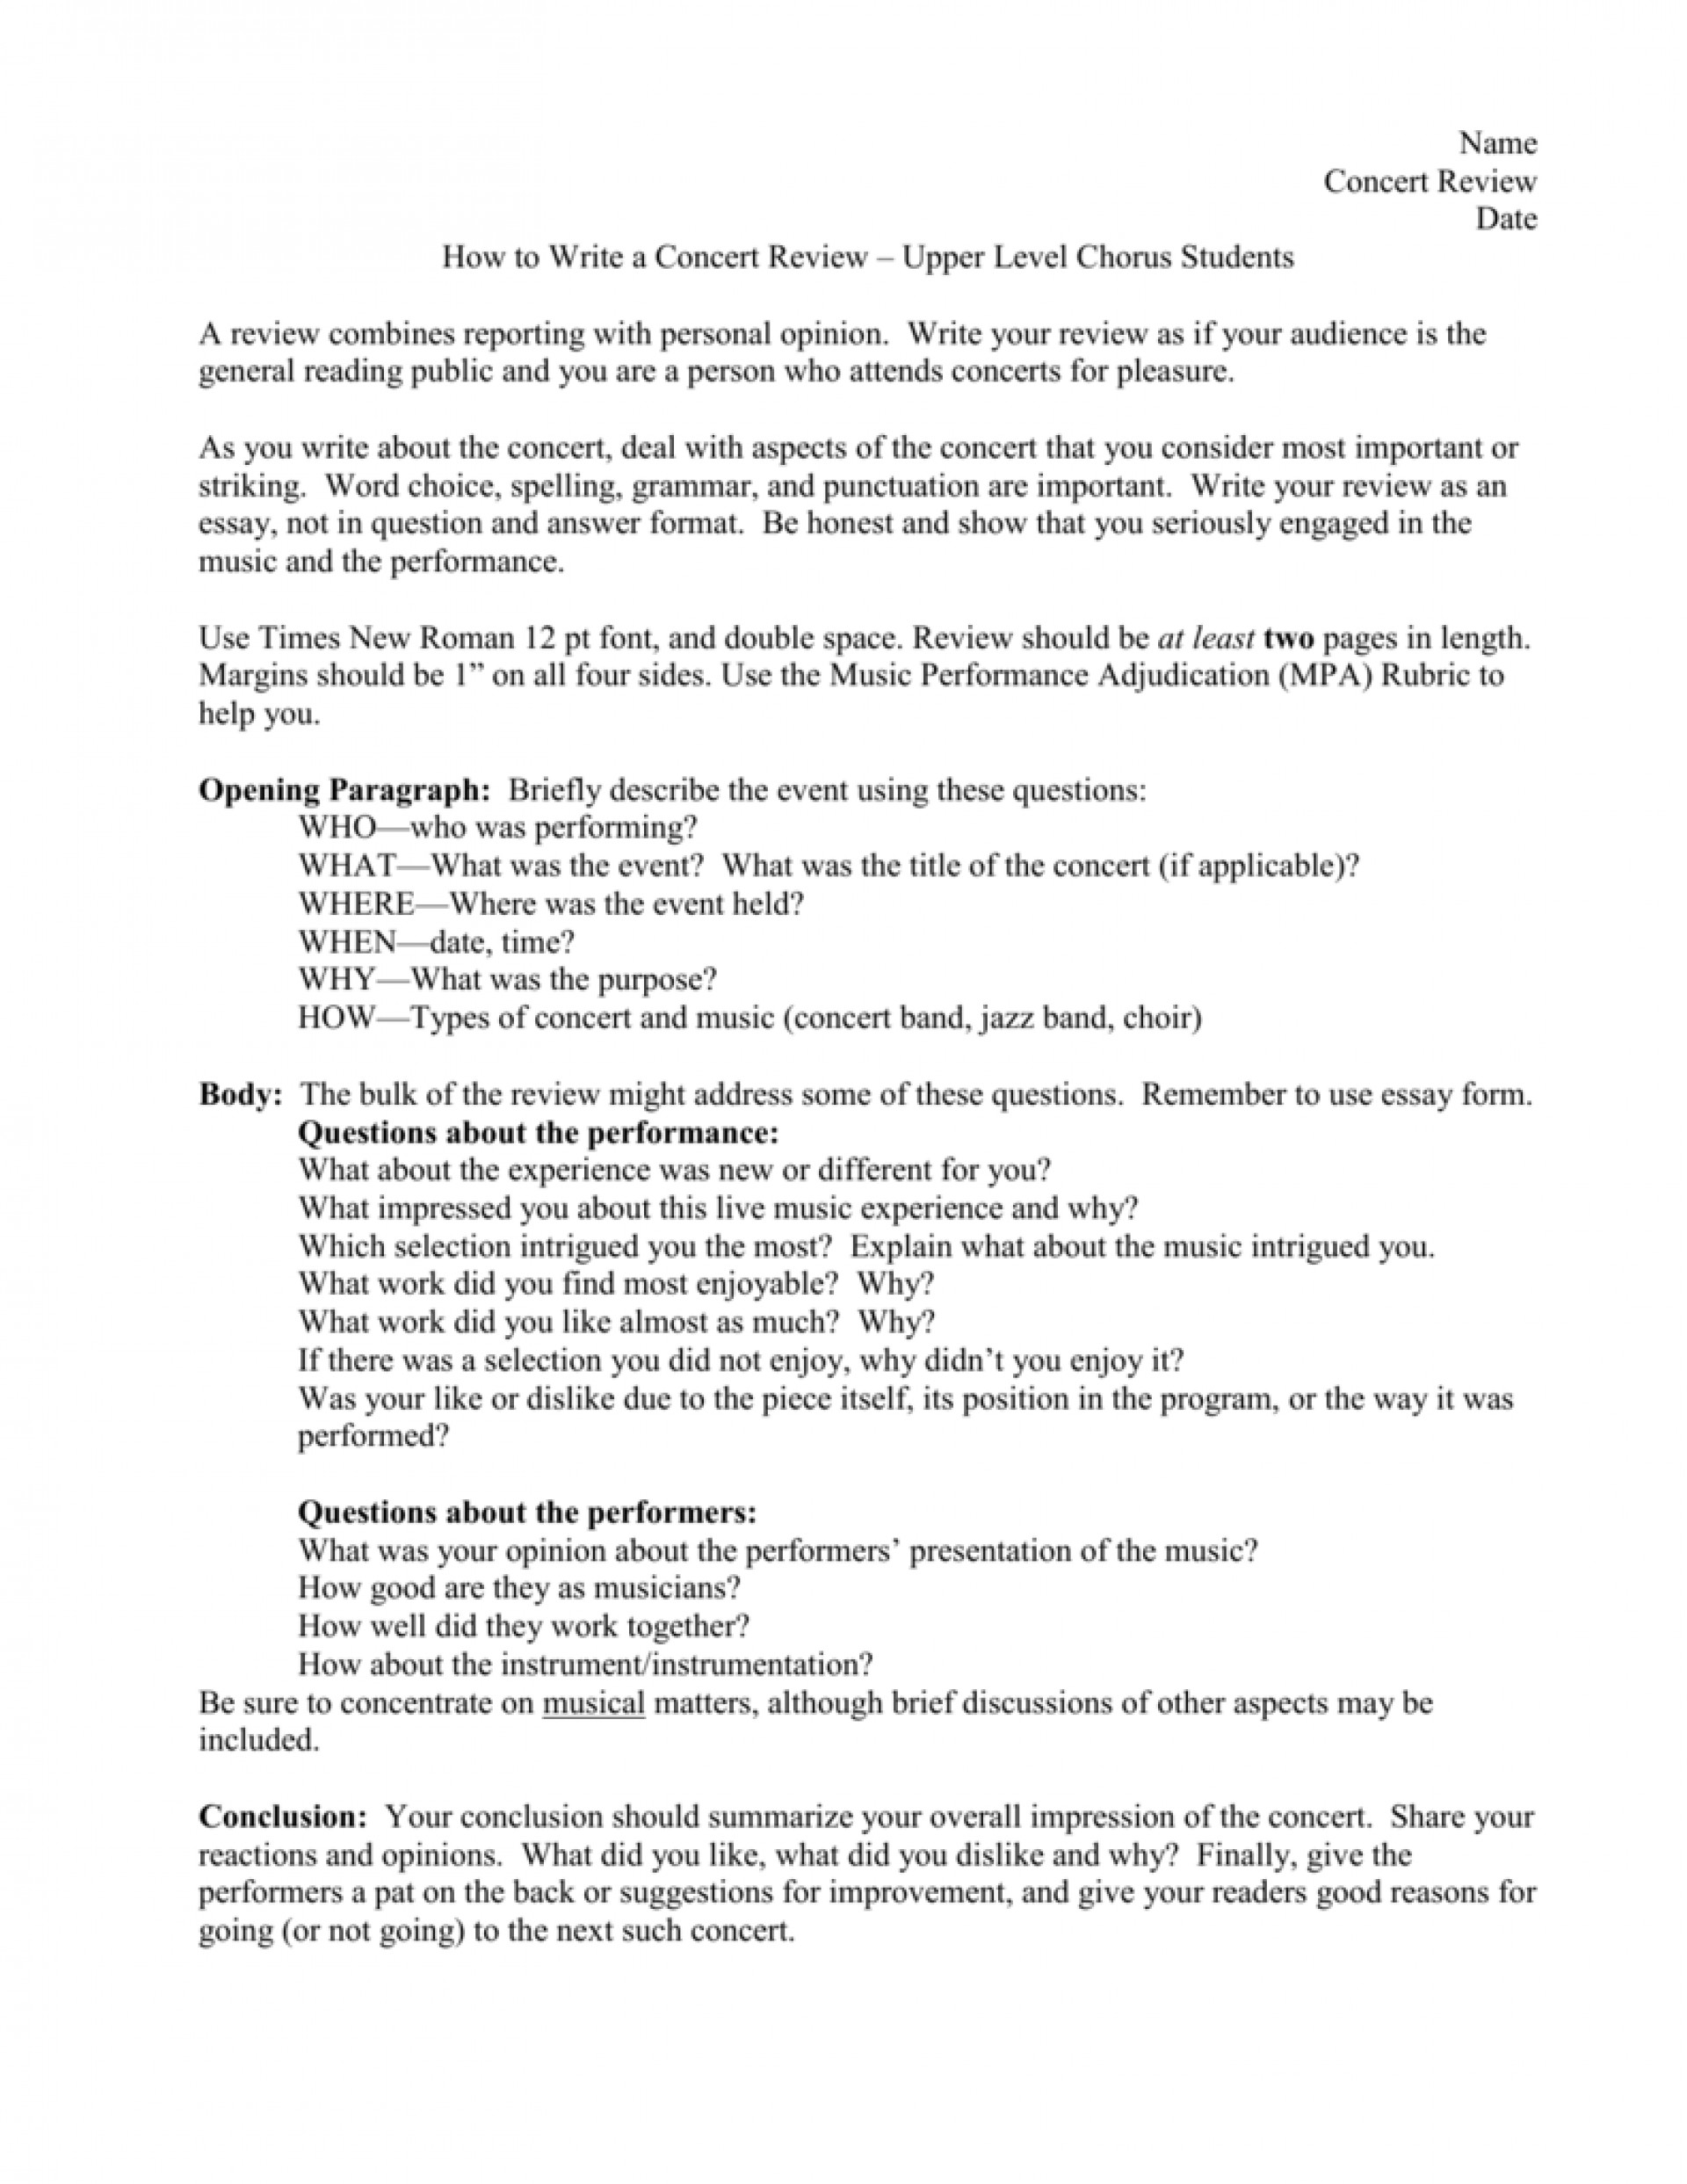 007 Essay Example Jazz Report Concert College Paper Academic Service Sample 008063356 1 Review Music Fascinating Appreciation 1920